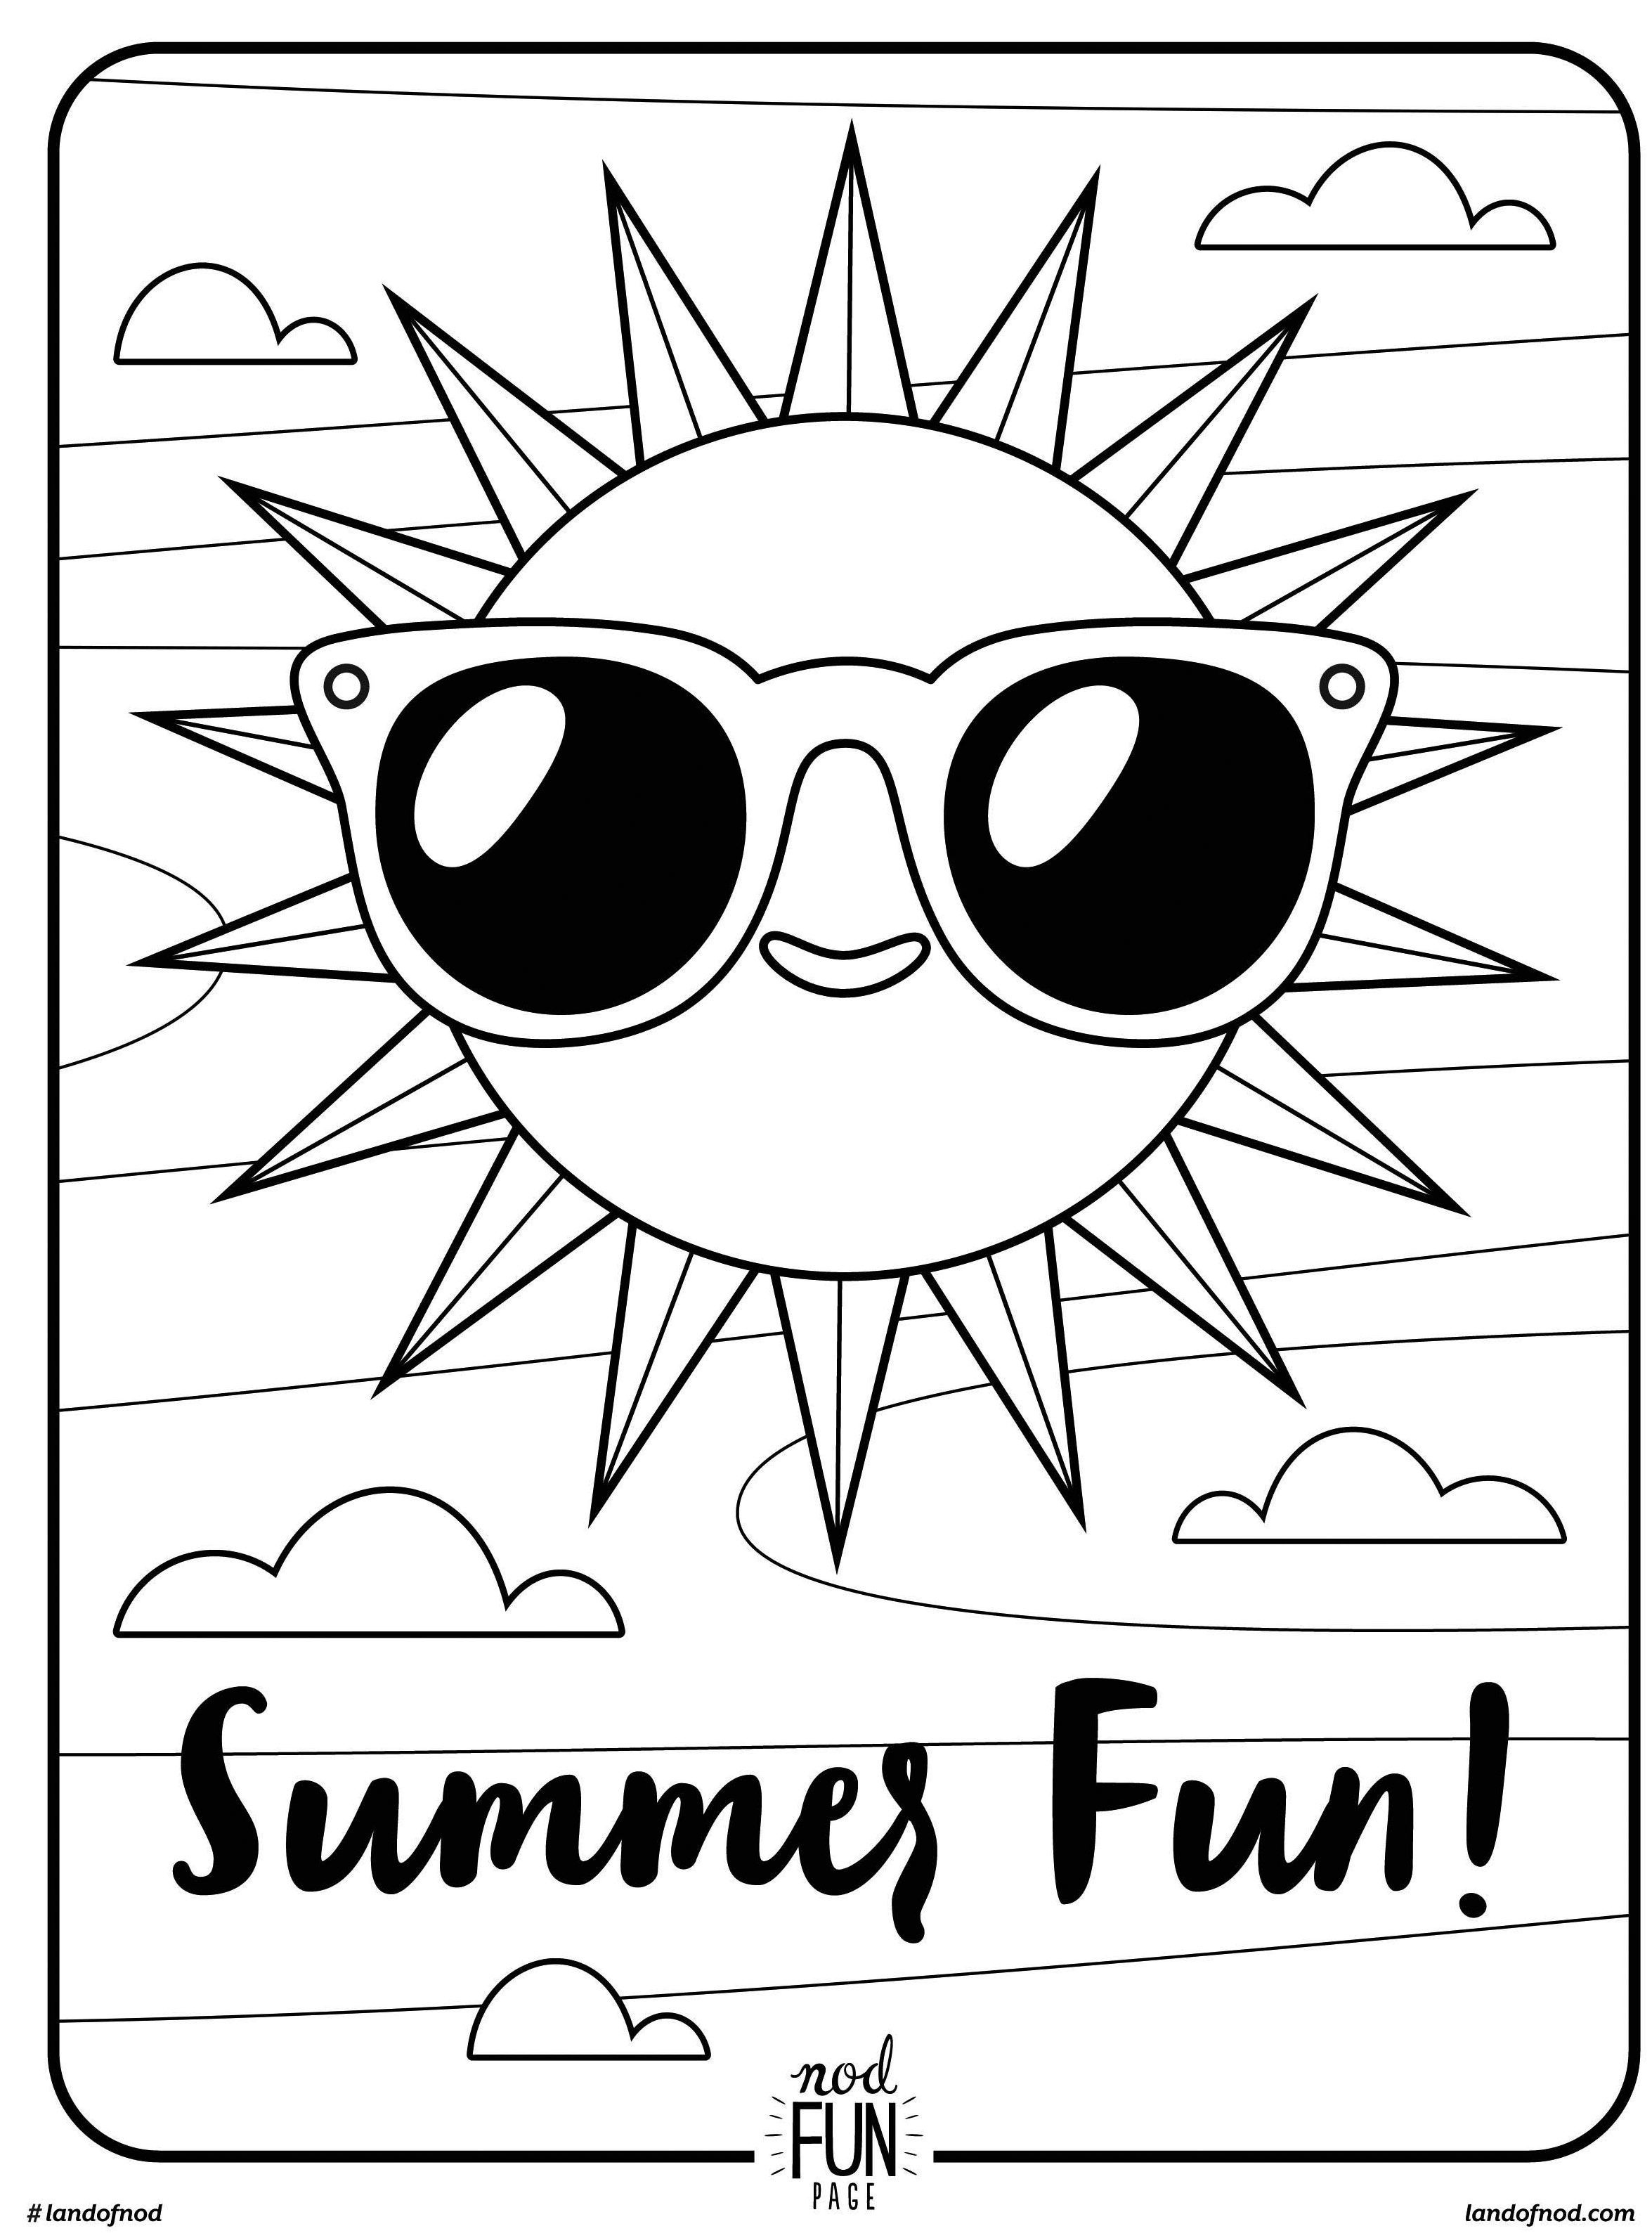 Free Printable Coloring Page: Summer Fun | Summer | Summer Coloring - Summer Coloring Sheets Free Printable